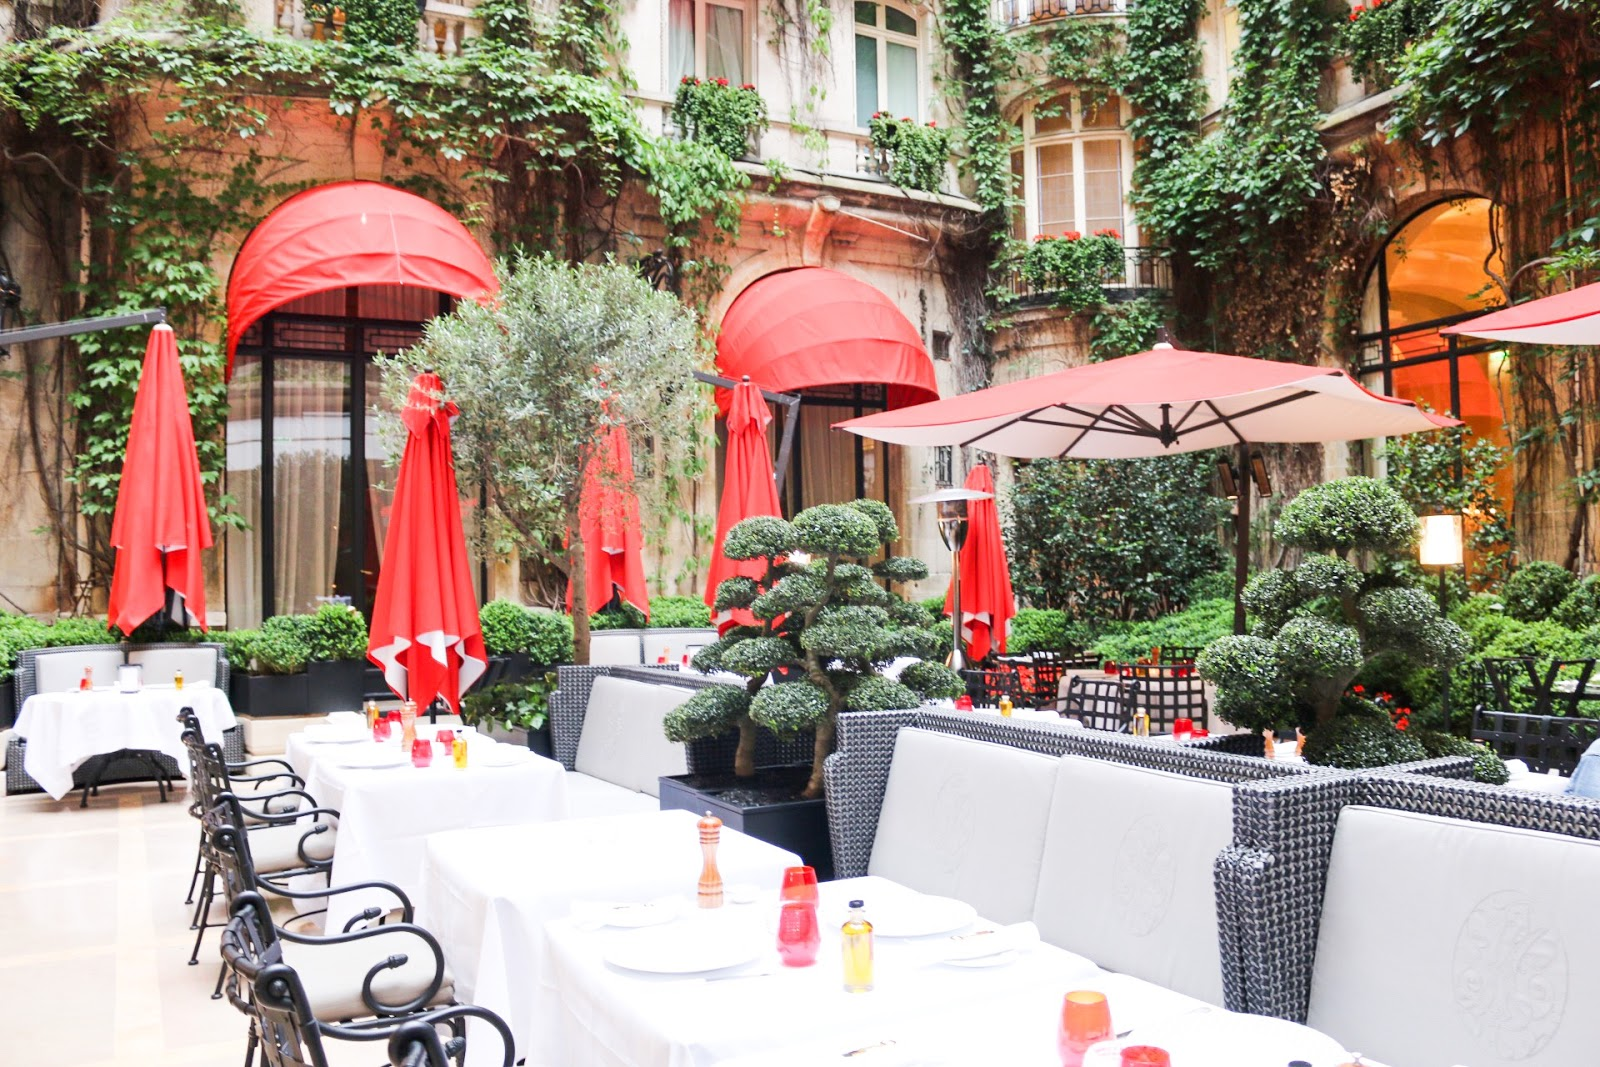 La cour jardin du plaza ath n e eat life with style for Jardin plaza